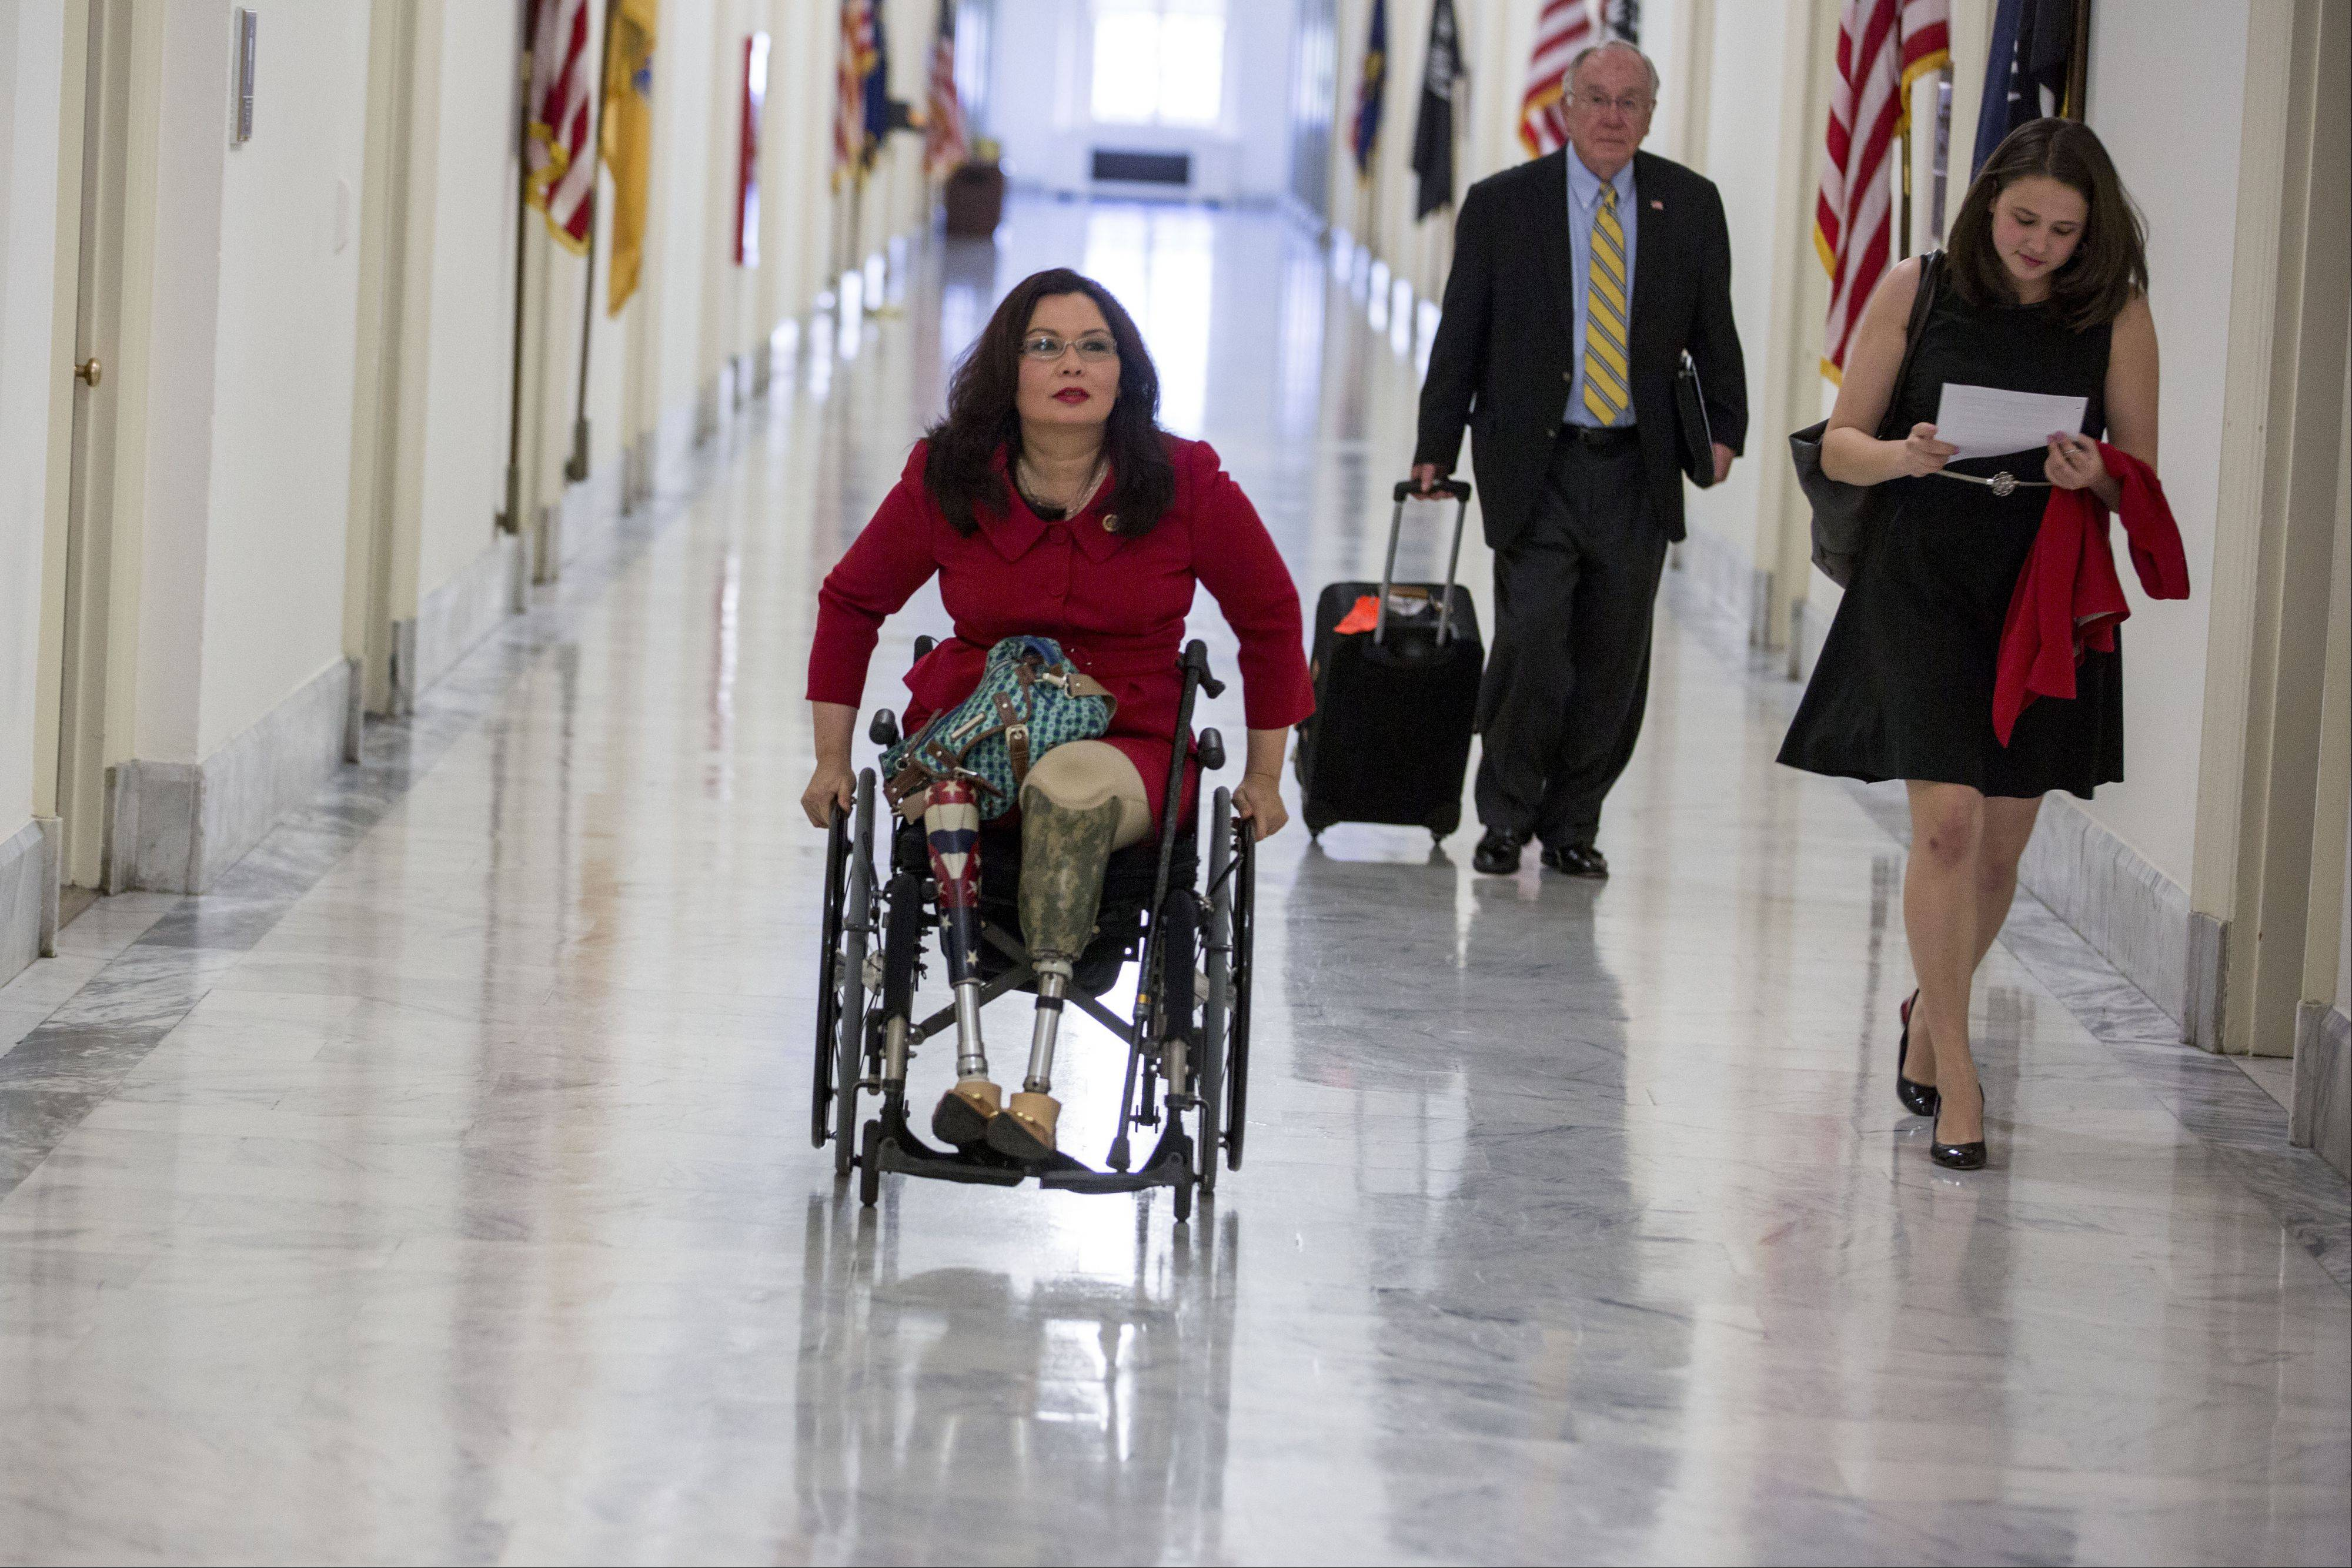 Democratic U.S. Rep. Tammy Duckworth of Hoffman Estates heads for a meeting on Capitol Hill.